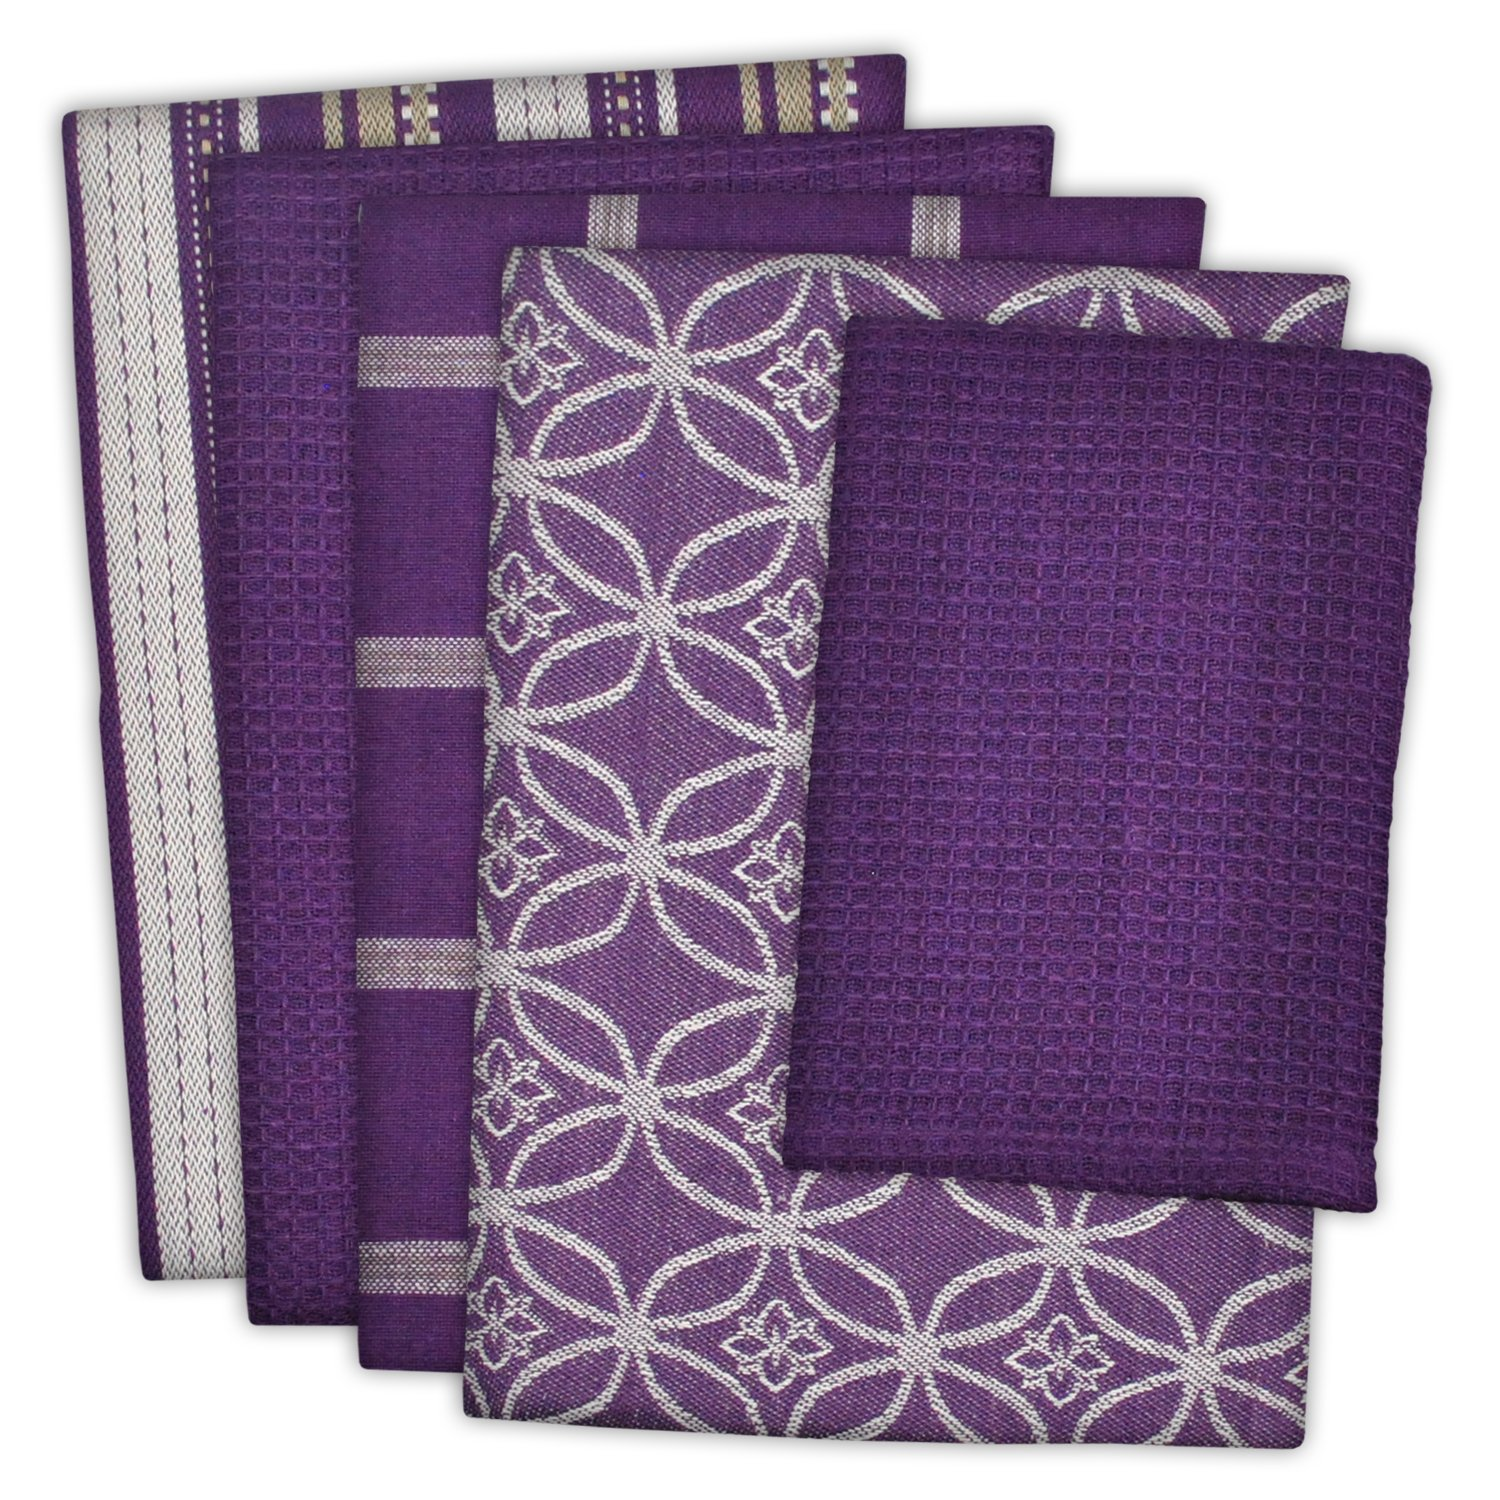 DII Cotton Oversized Kitchen Dish Towels 18 x 28'' and Dishcloth 13 x 13'', Set of 5 , Absorbent Washing Drying Dishtowels for Everyday Cooking and Baking-Eggplant